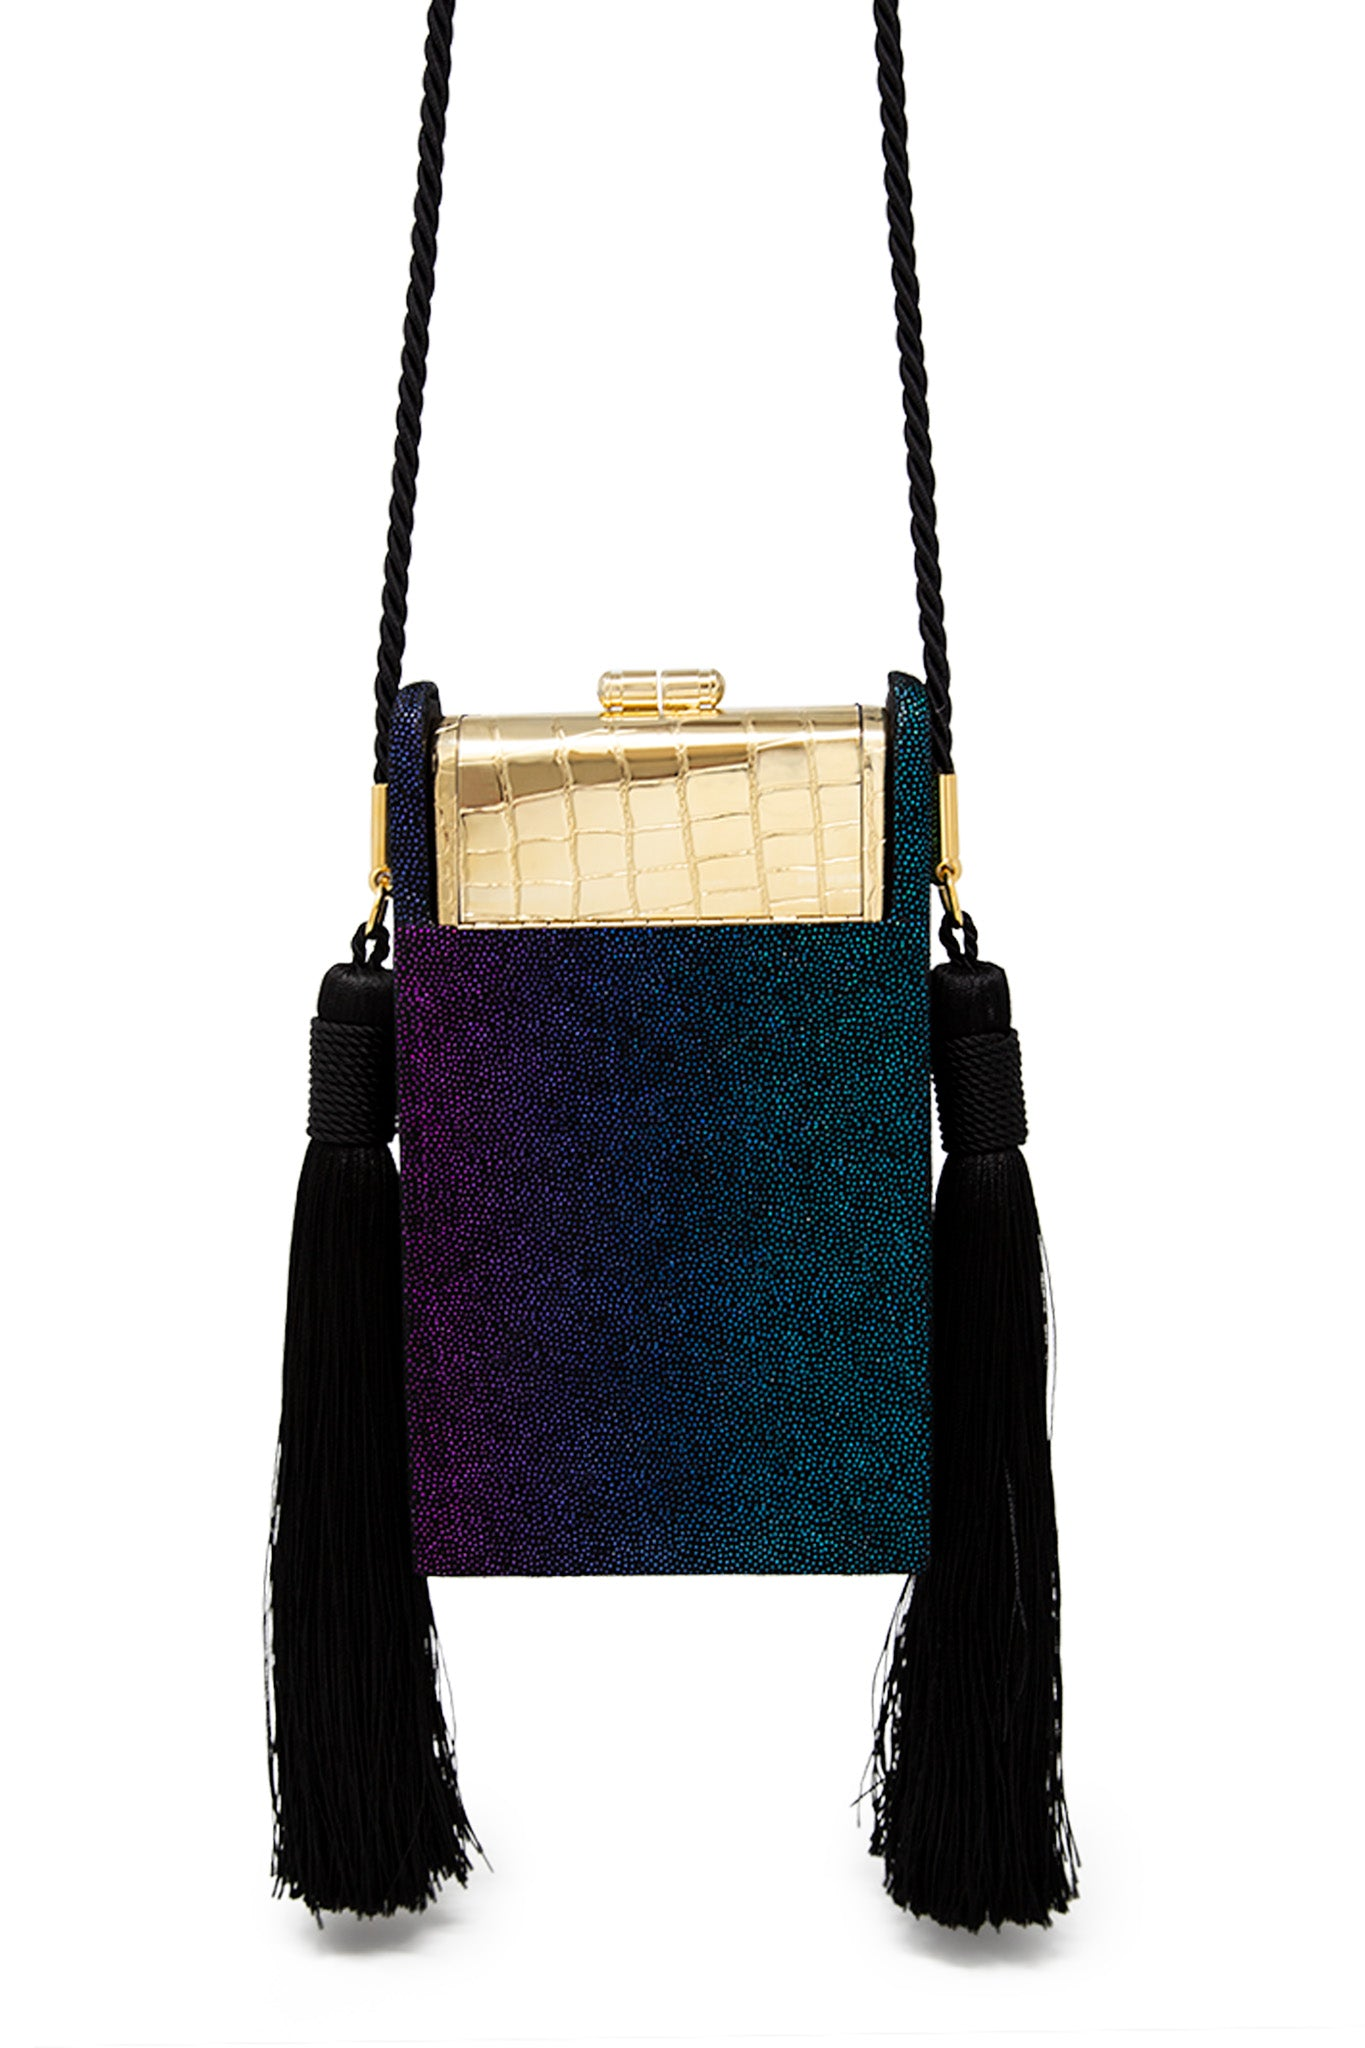 Gold Croco Palladium Phone Case with Rainbow Leather Tassel Case